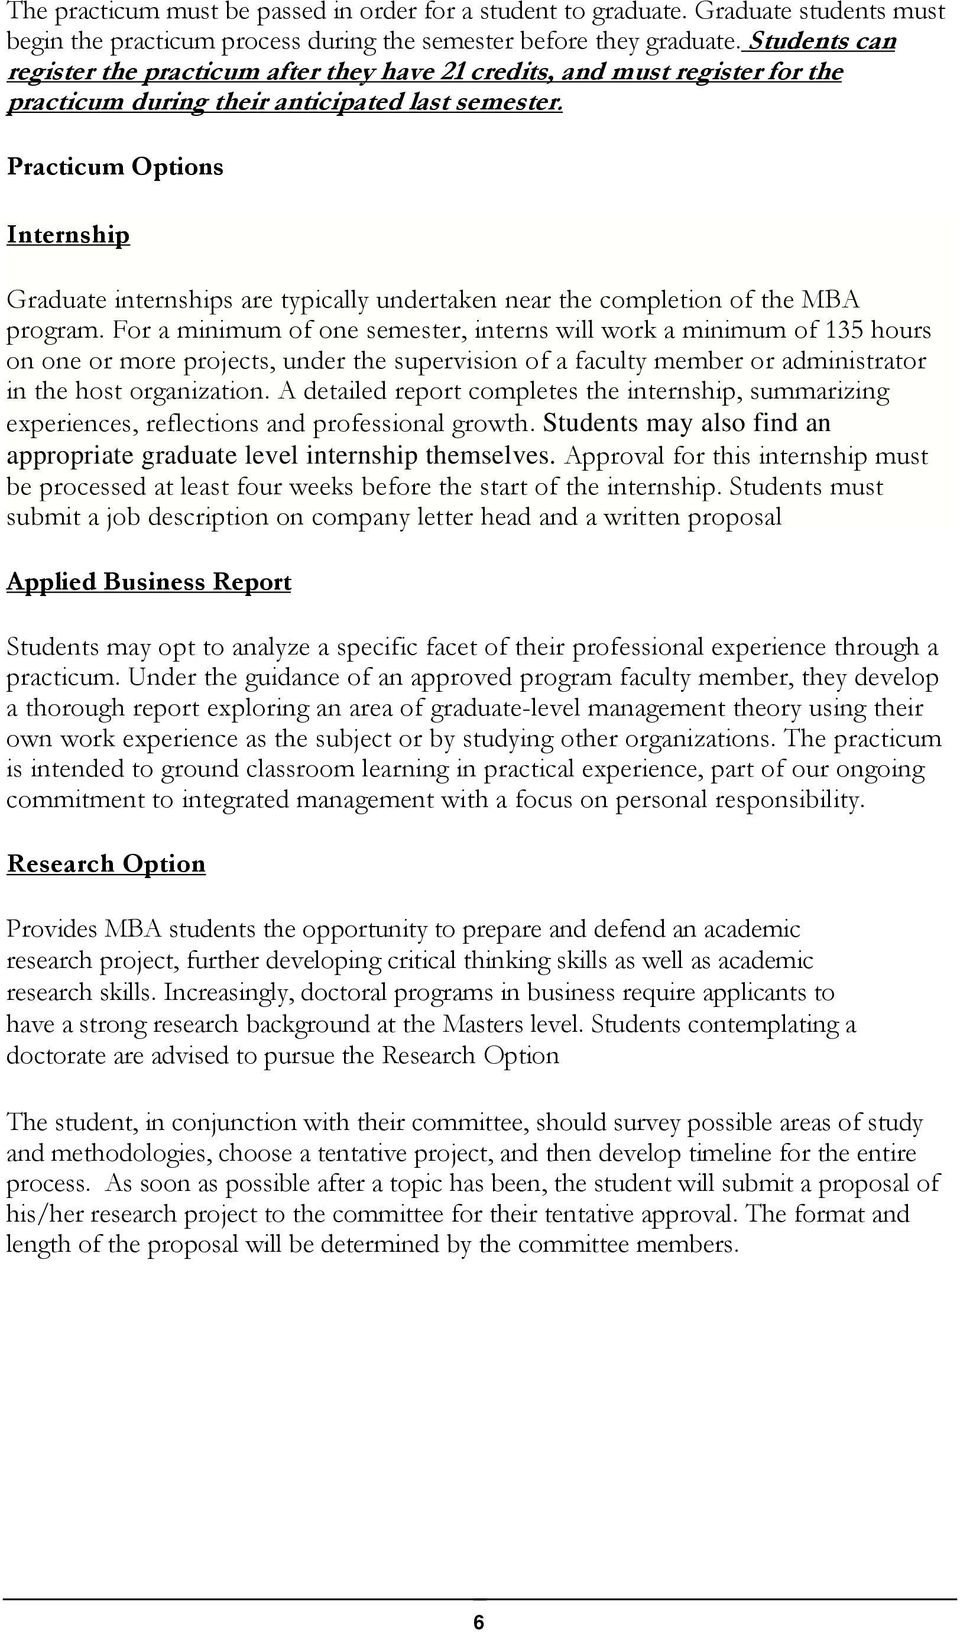 Practicum Options Internship Graduate internships are typically undertaken near the completion of the MBA program.